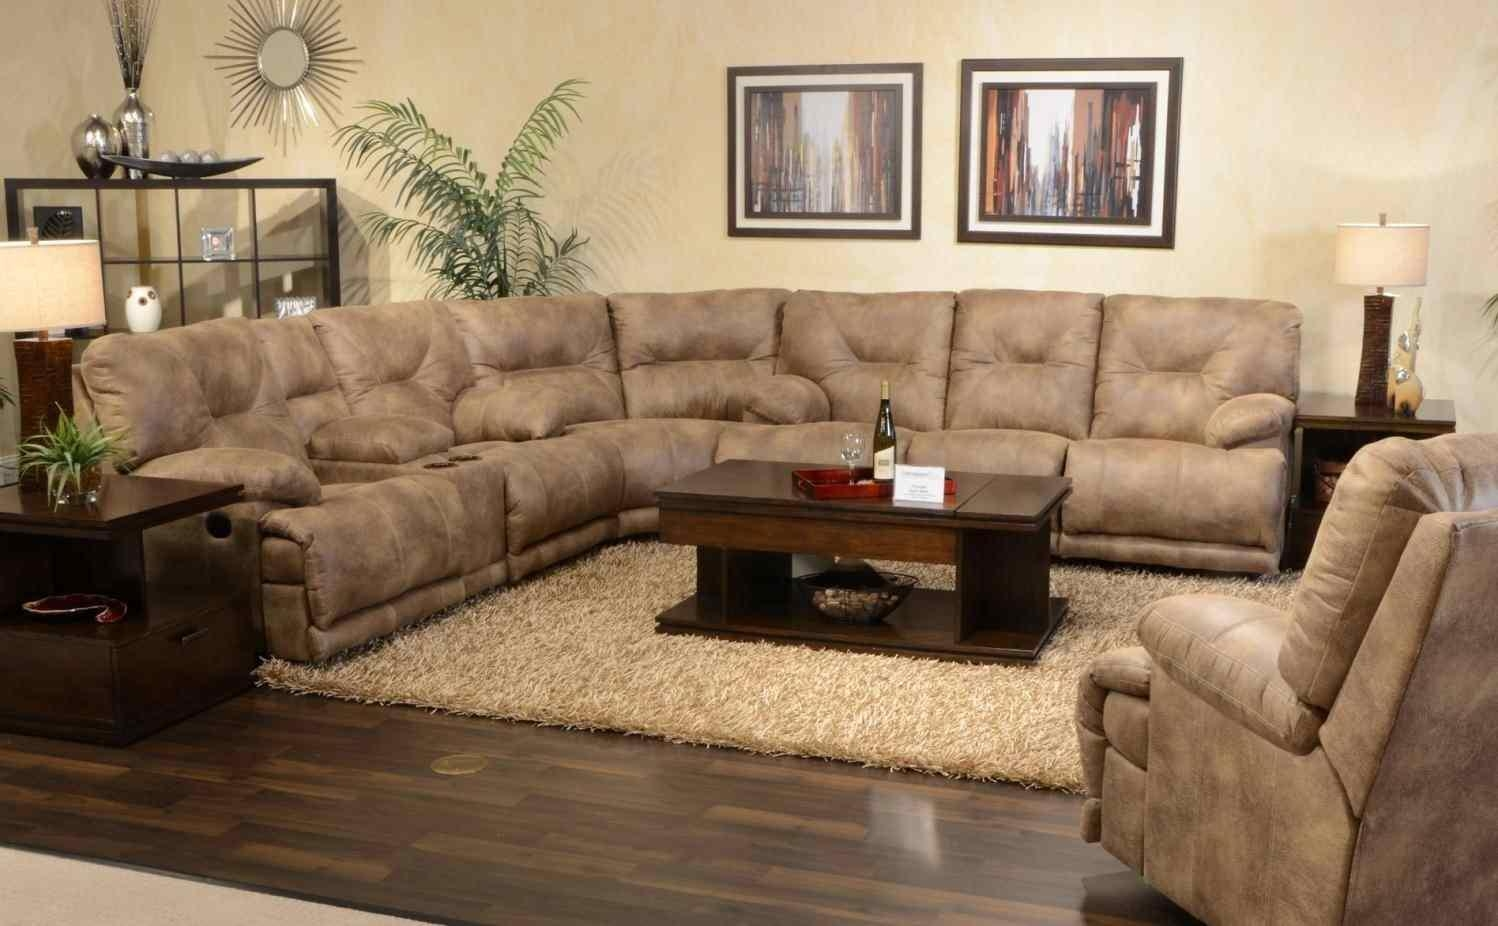 Sectional Sofas Denver | Chikara Do Reiki Pertaining To Denver Sectional (Image 14 of 15)